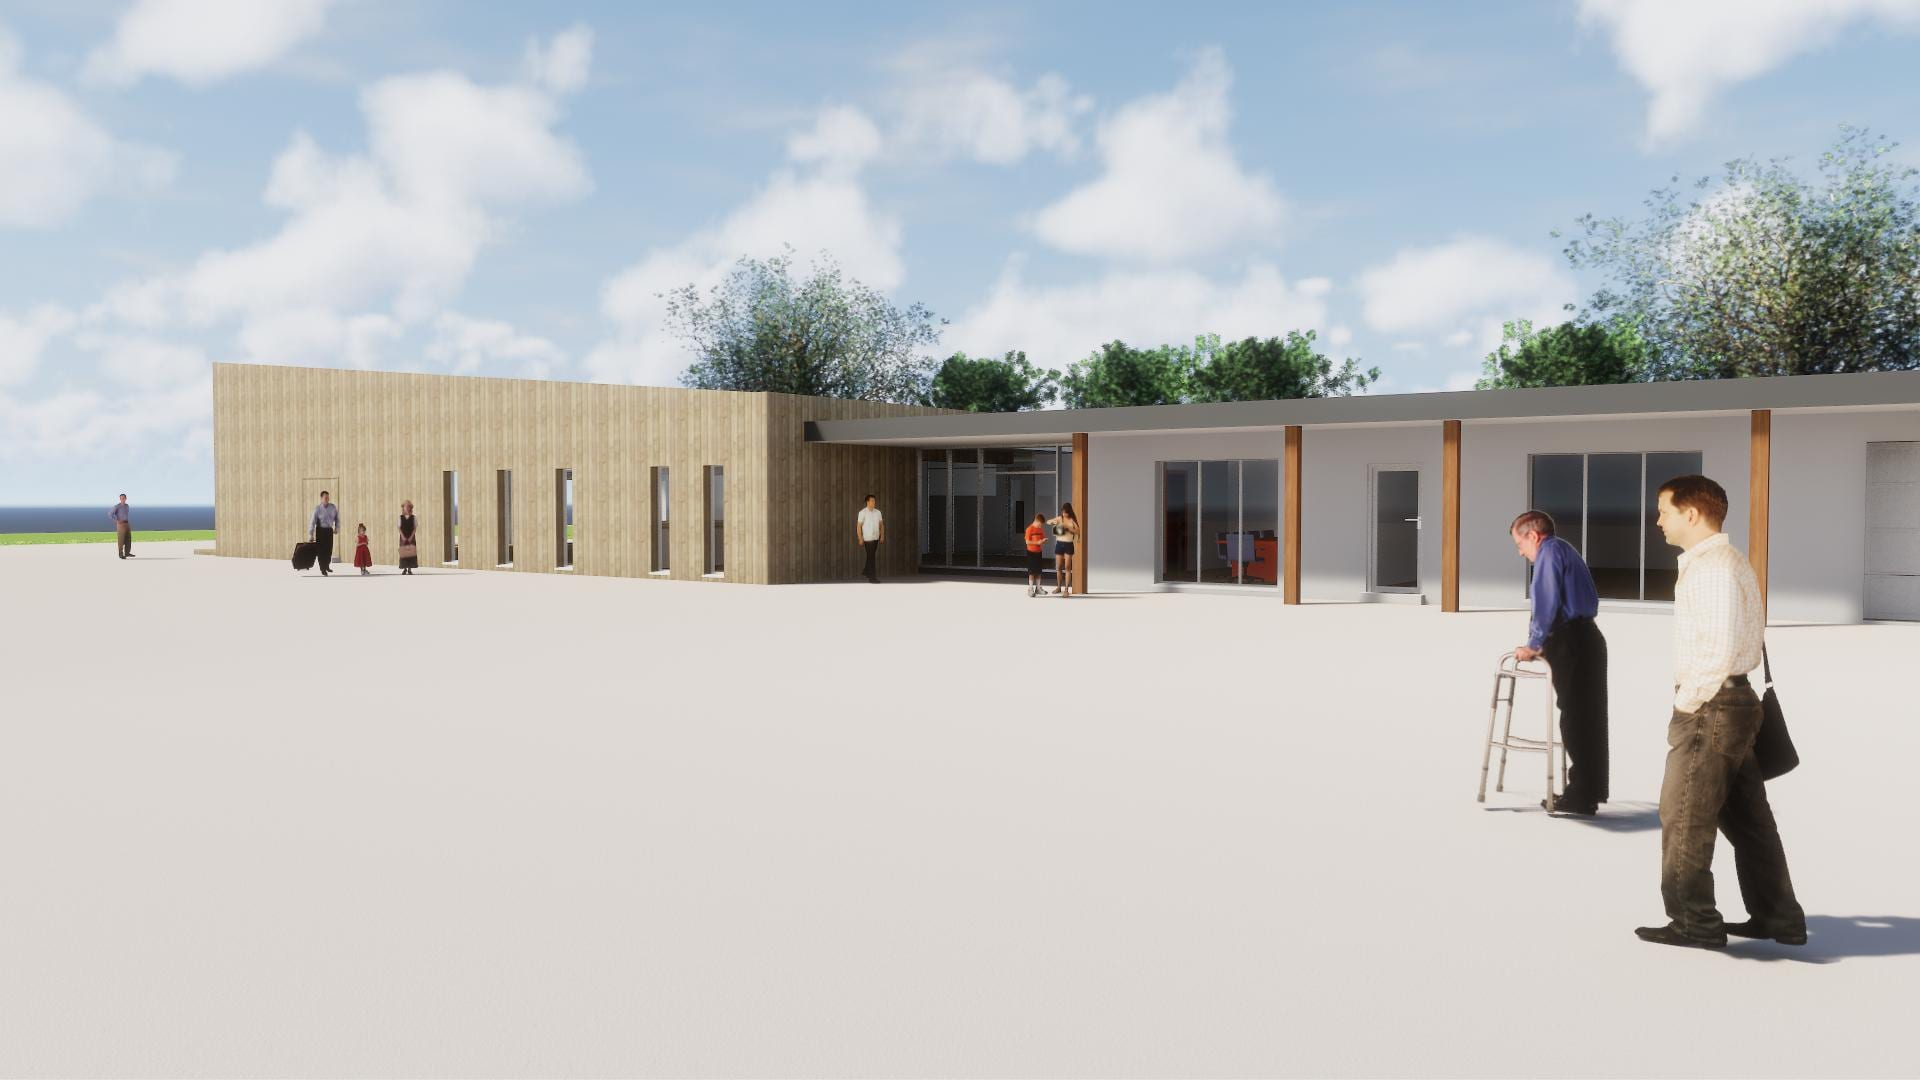 planning permission for new community centre and band rooms porthleven1